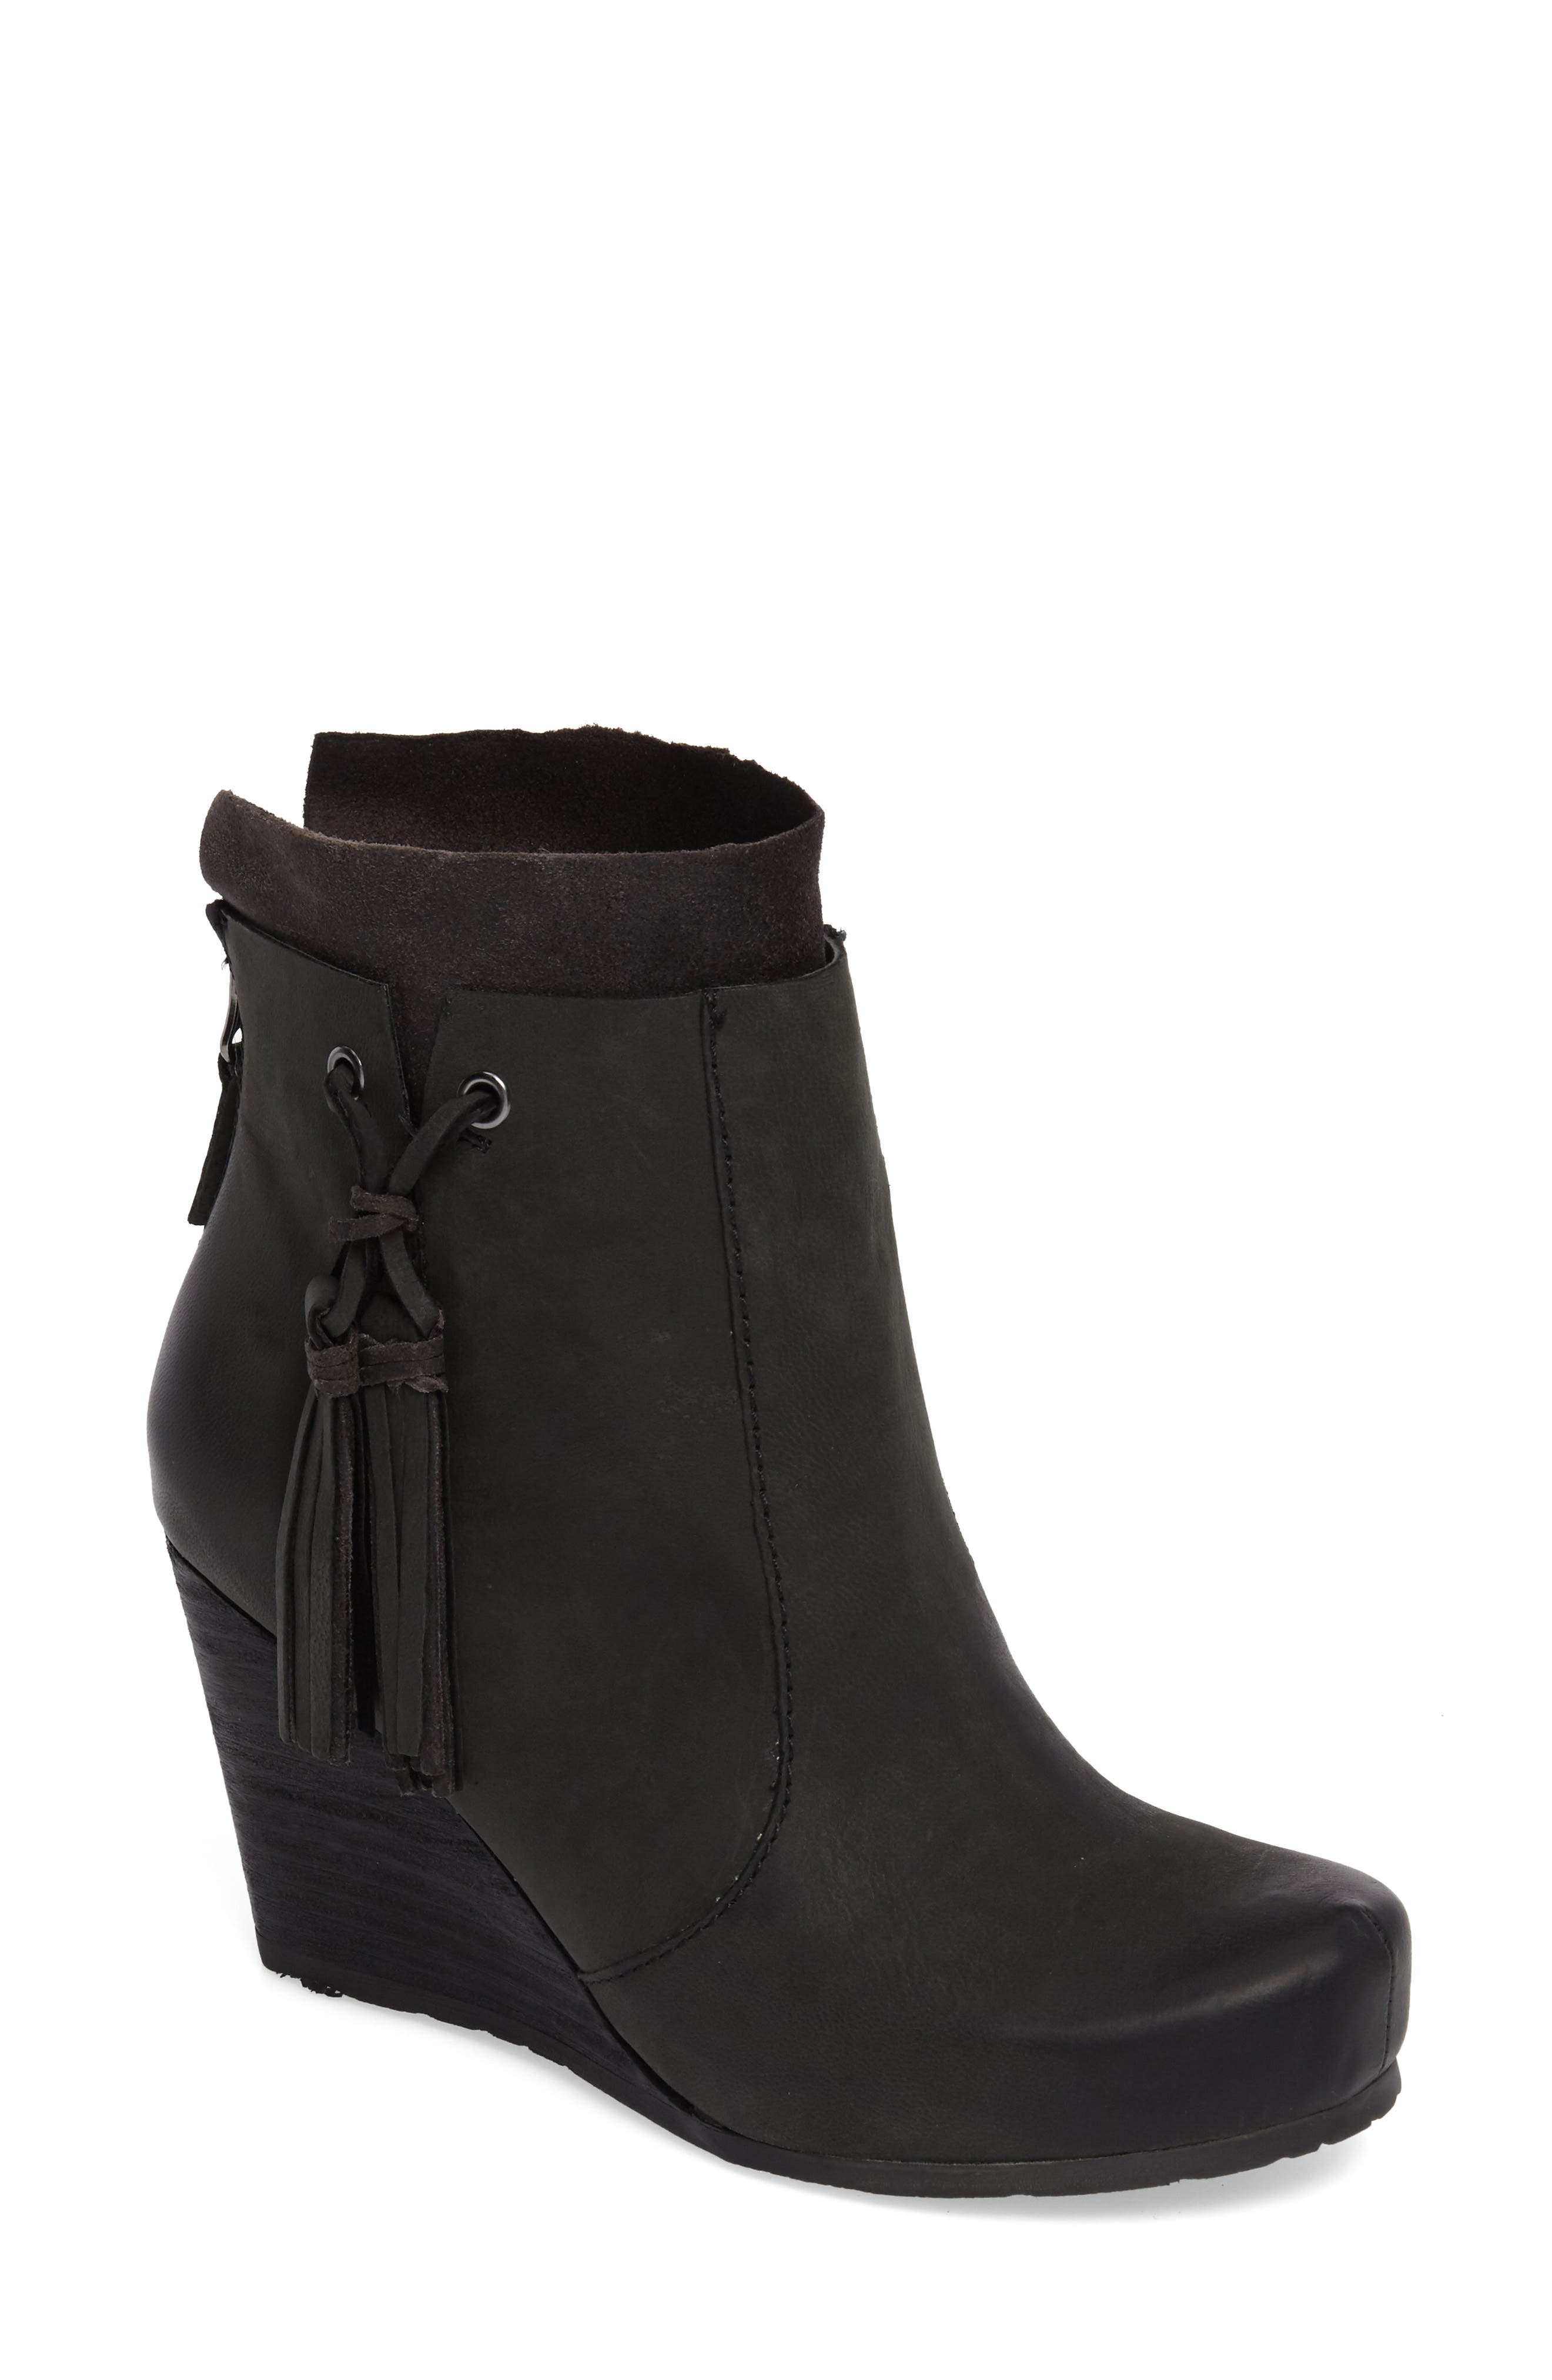 Vagary Wedge Bootie,                             Main thumbnail 1, color,                             BLACK LEATHER